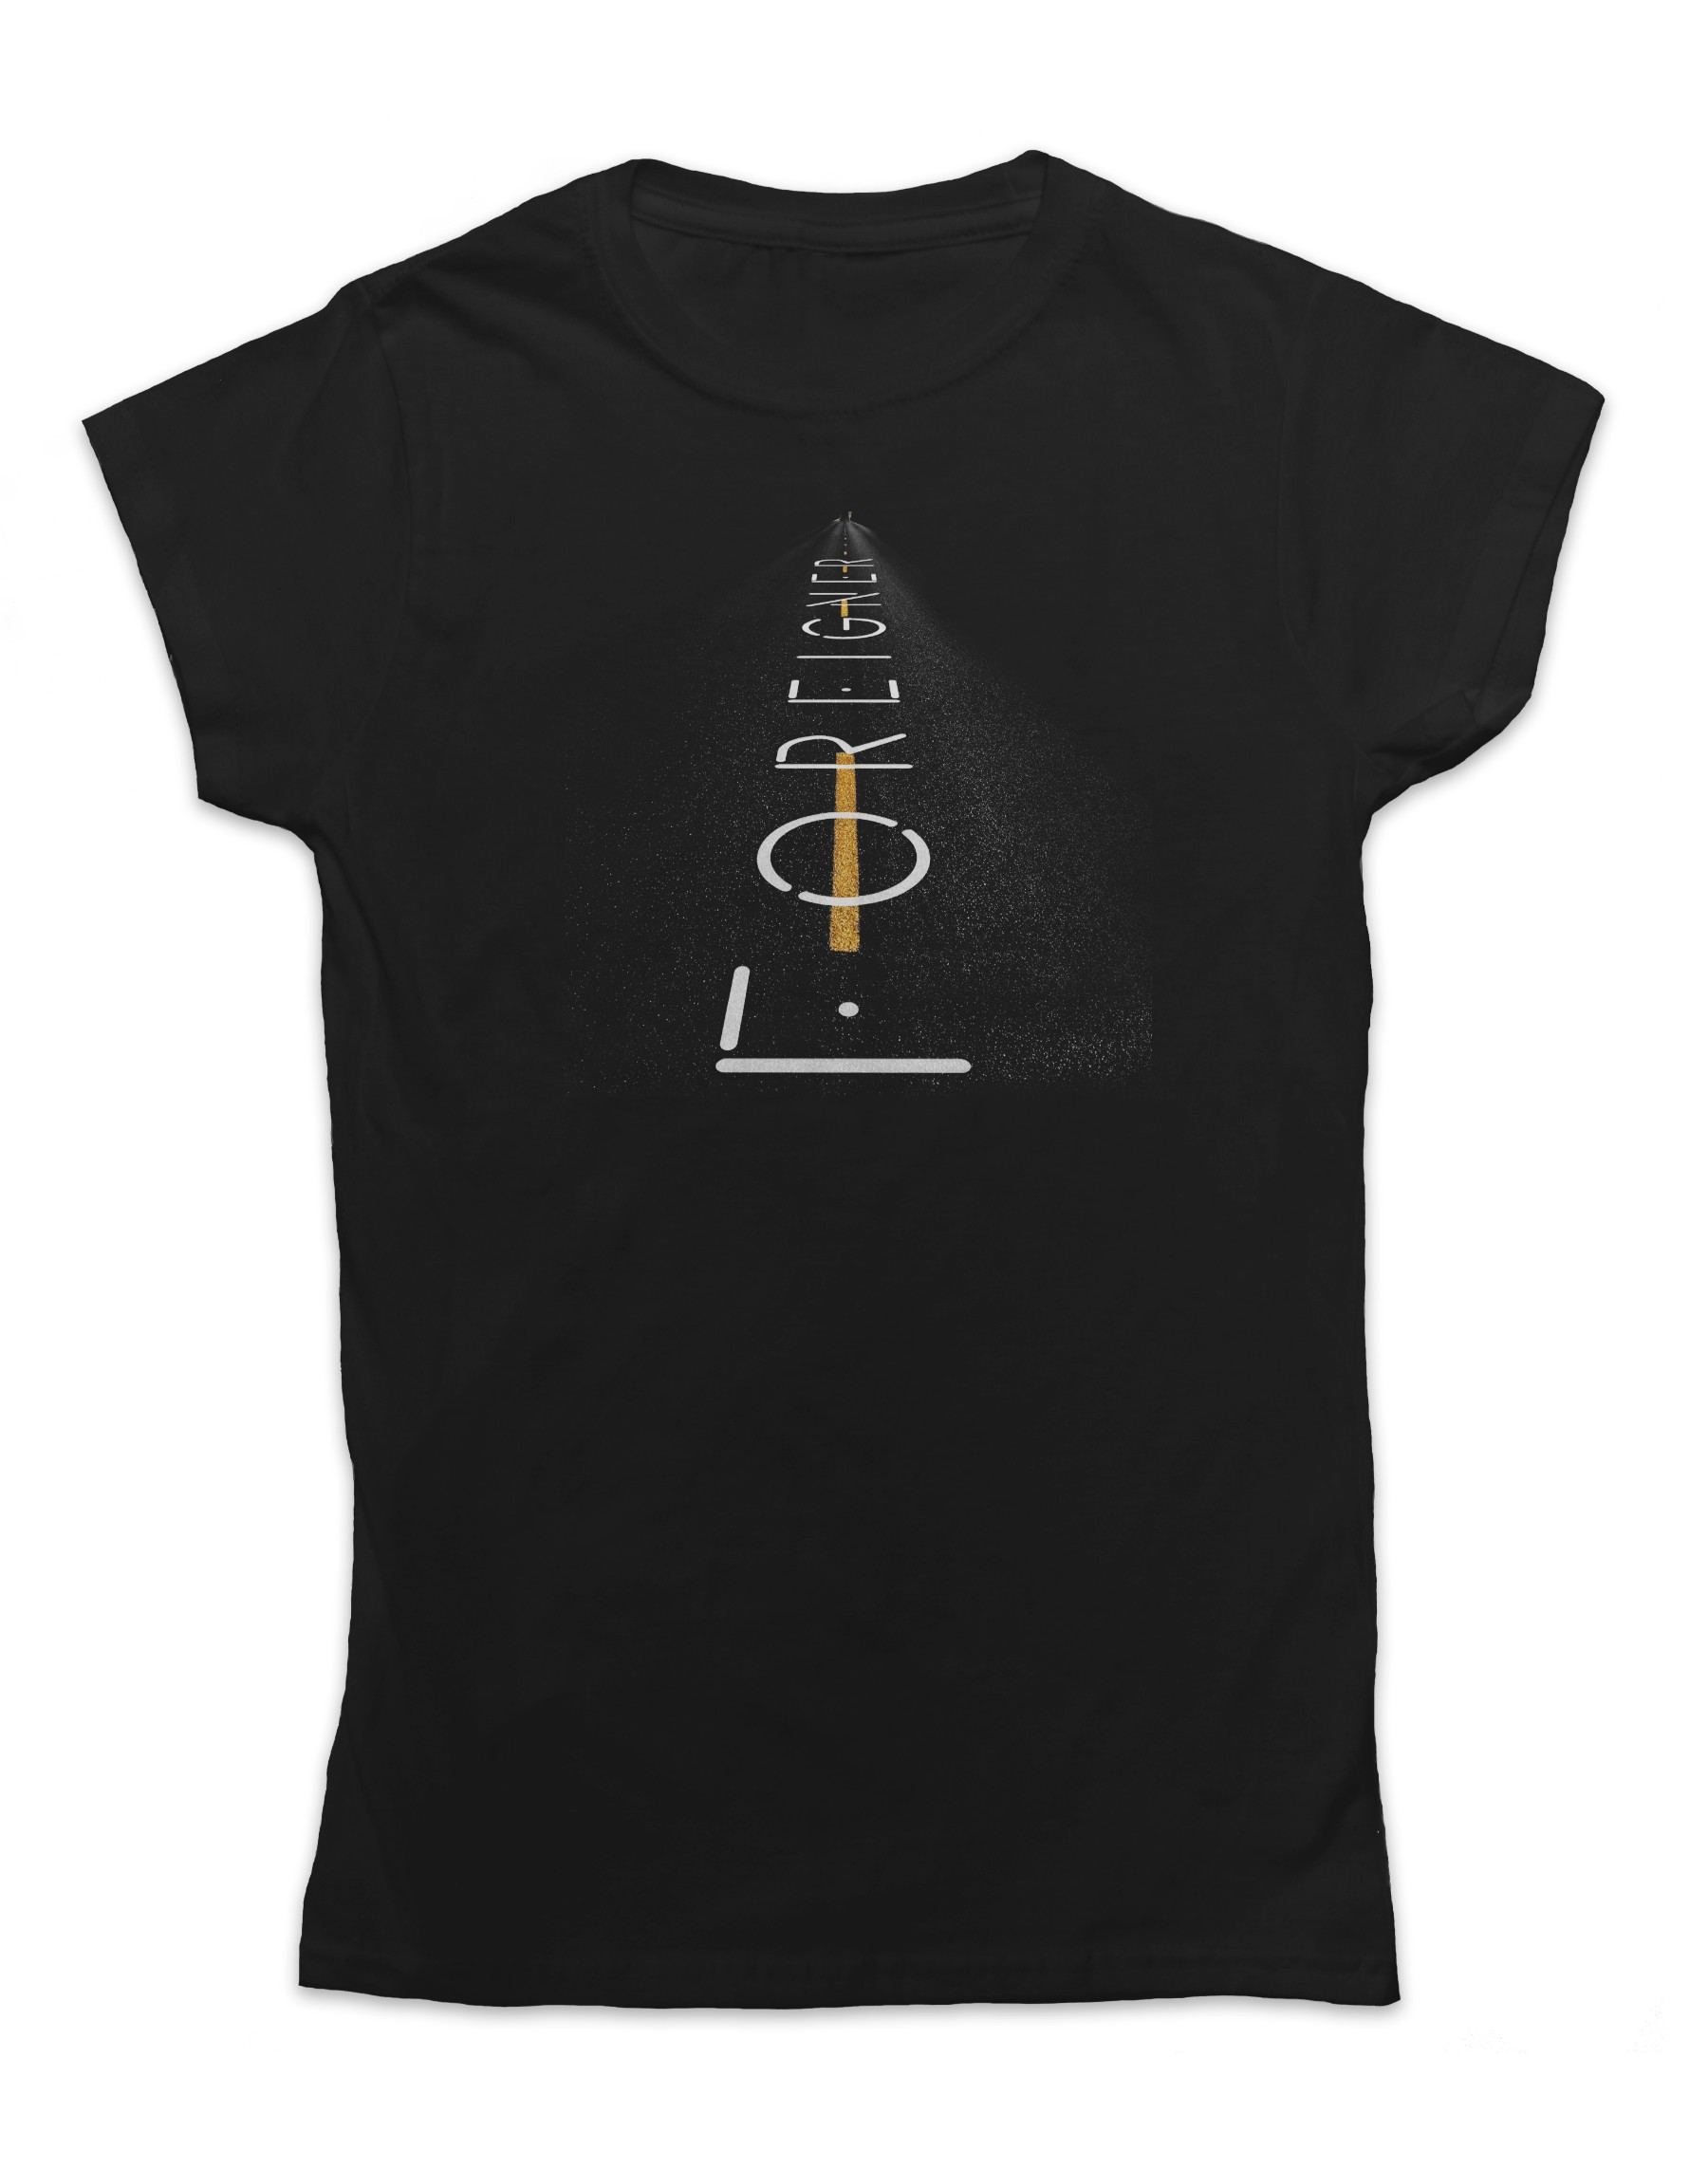 Foreigner Women's Road Logo T-Shirt